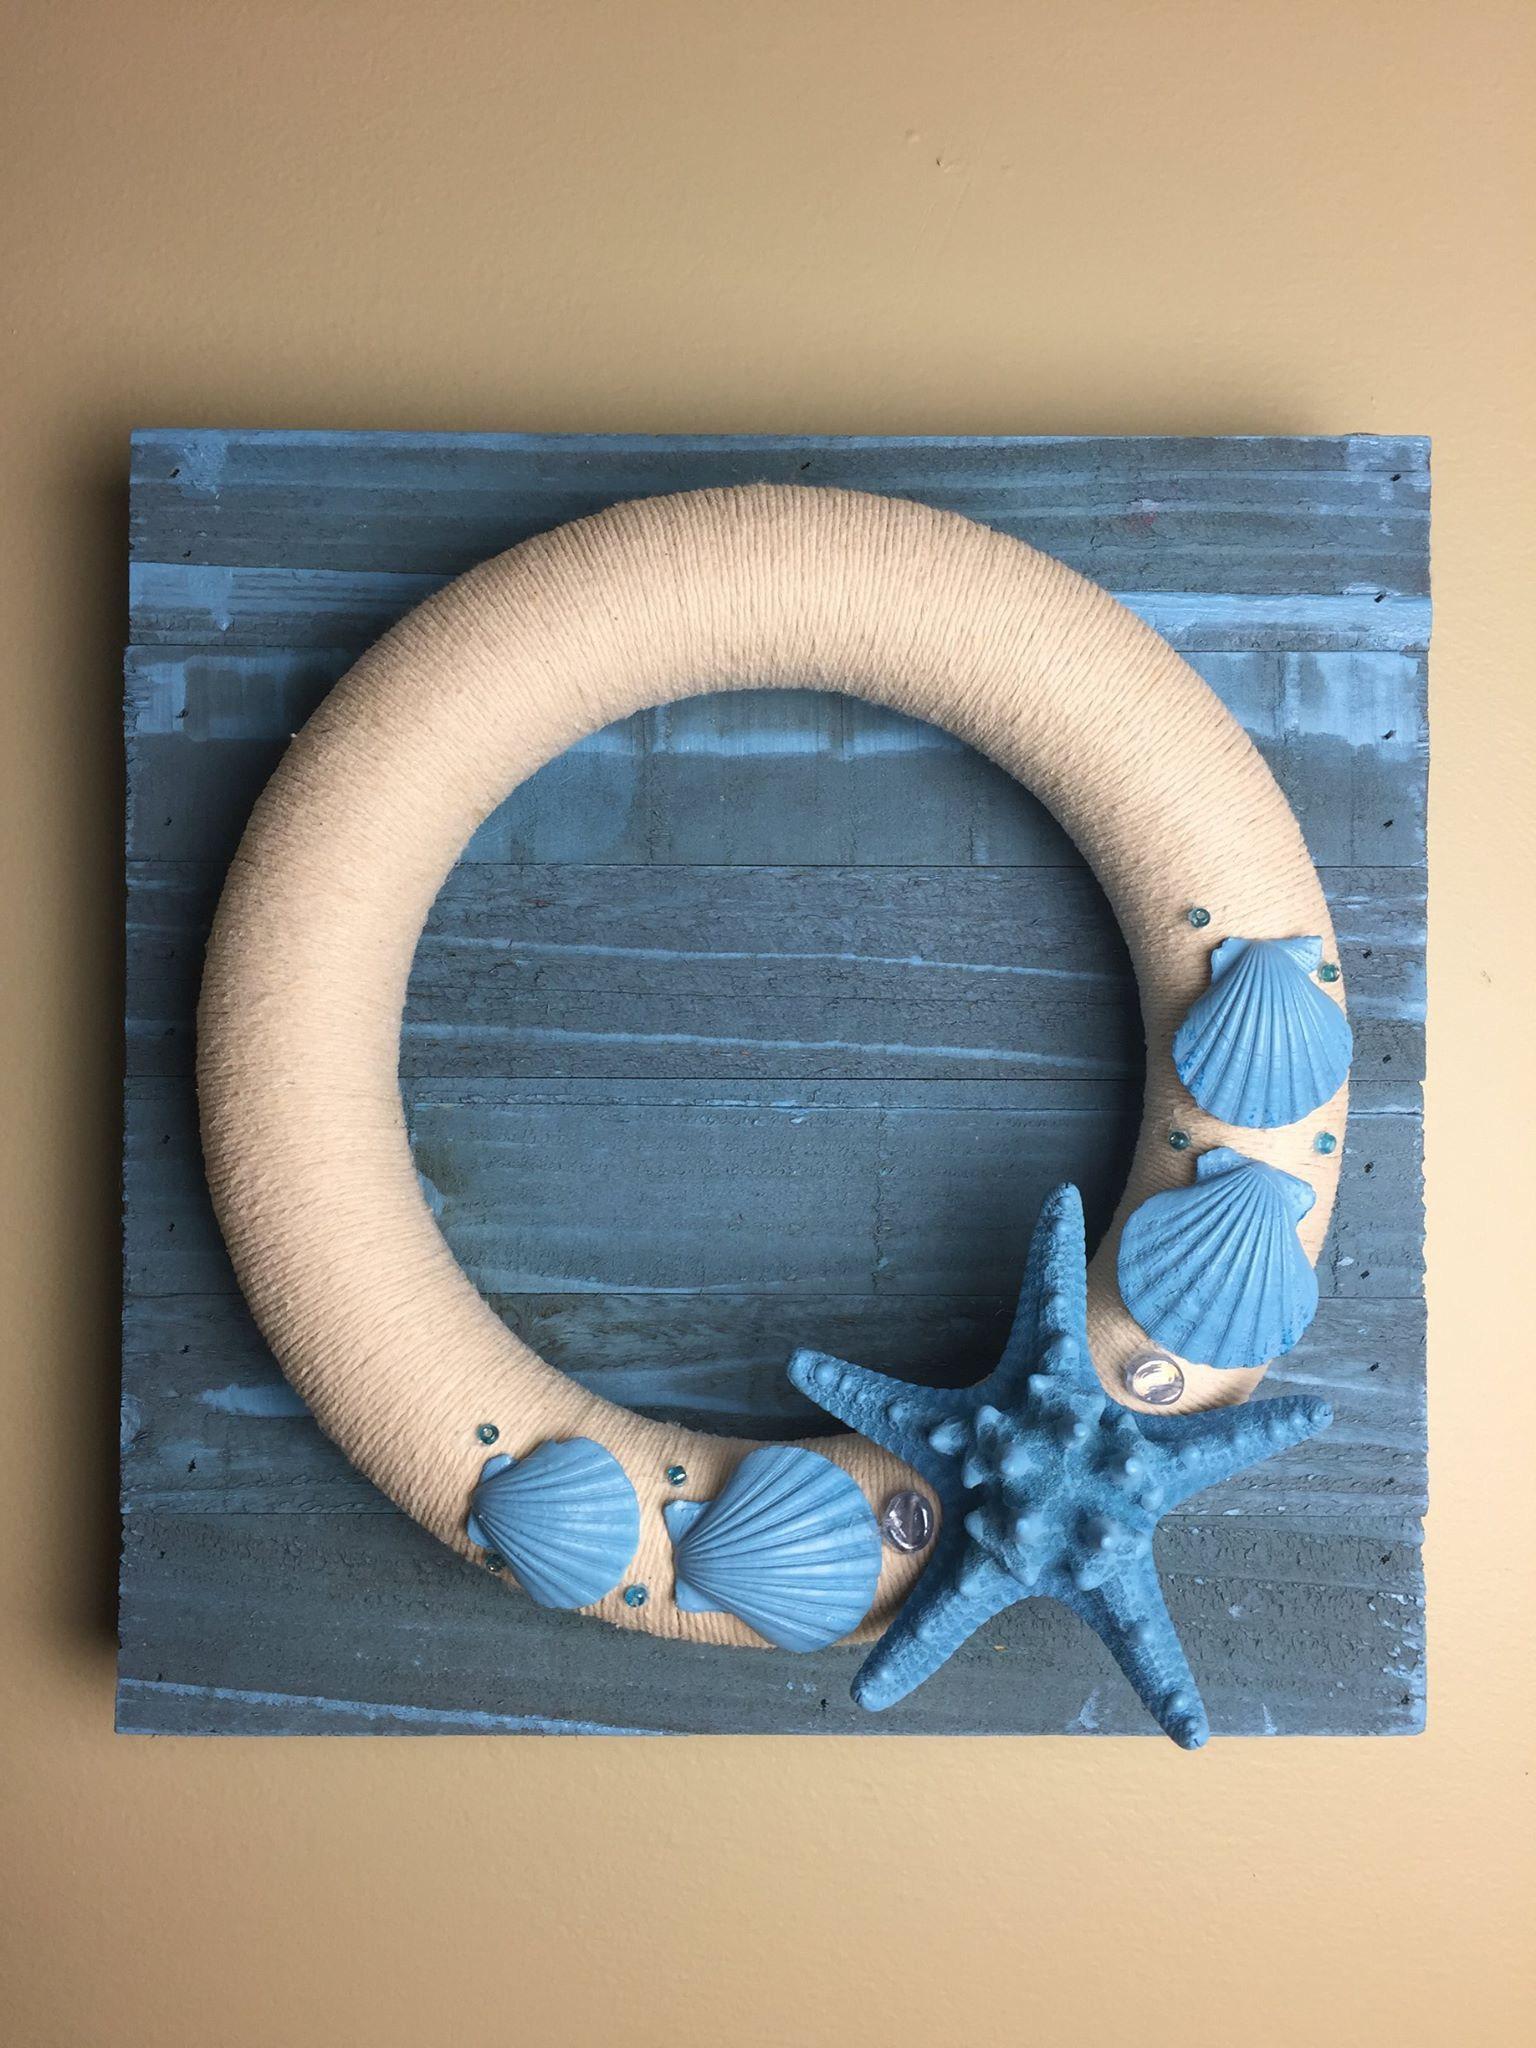 Beach theme twine wearth on aged wood. https://www.facebook.com/photo.php?fbid=10154254664478496